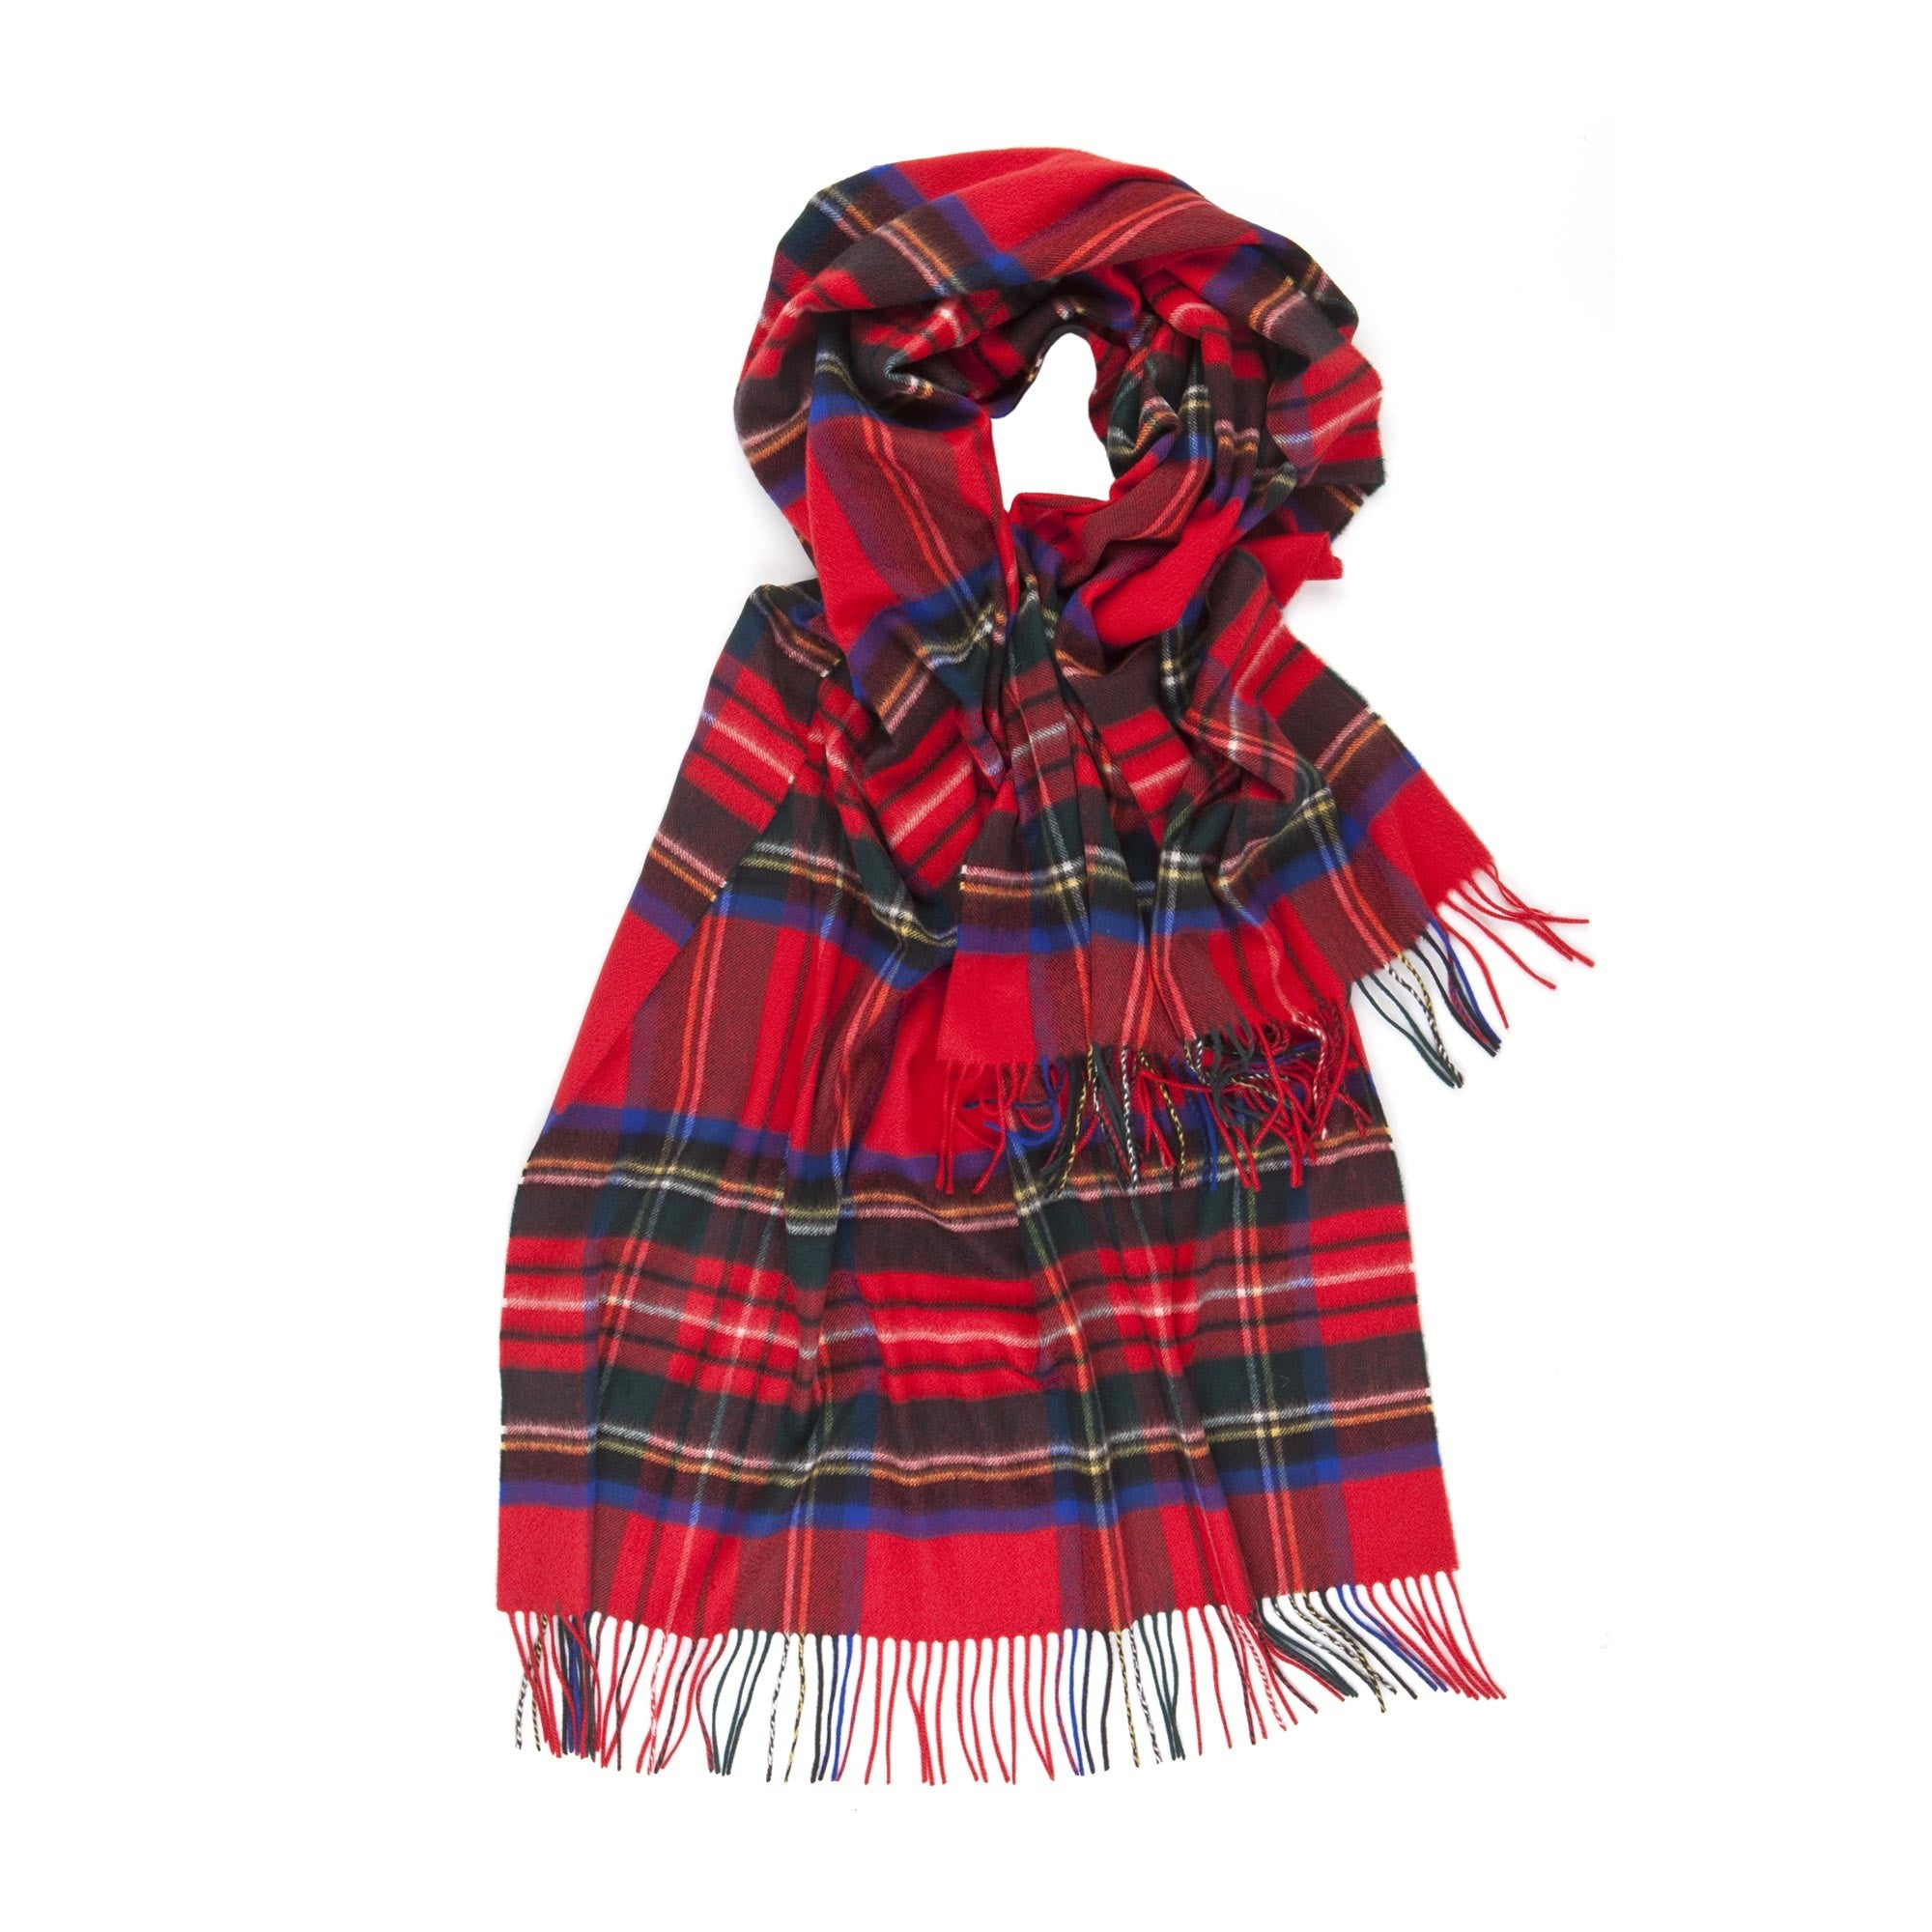 Johnsons of Elgin | Johnstons Cashmere | Royal Stewart Tartan Cashmere Stole | Large Scarf | buy at The Cashmere Choice | London